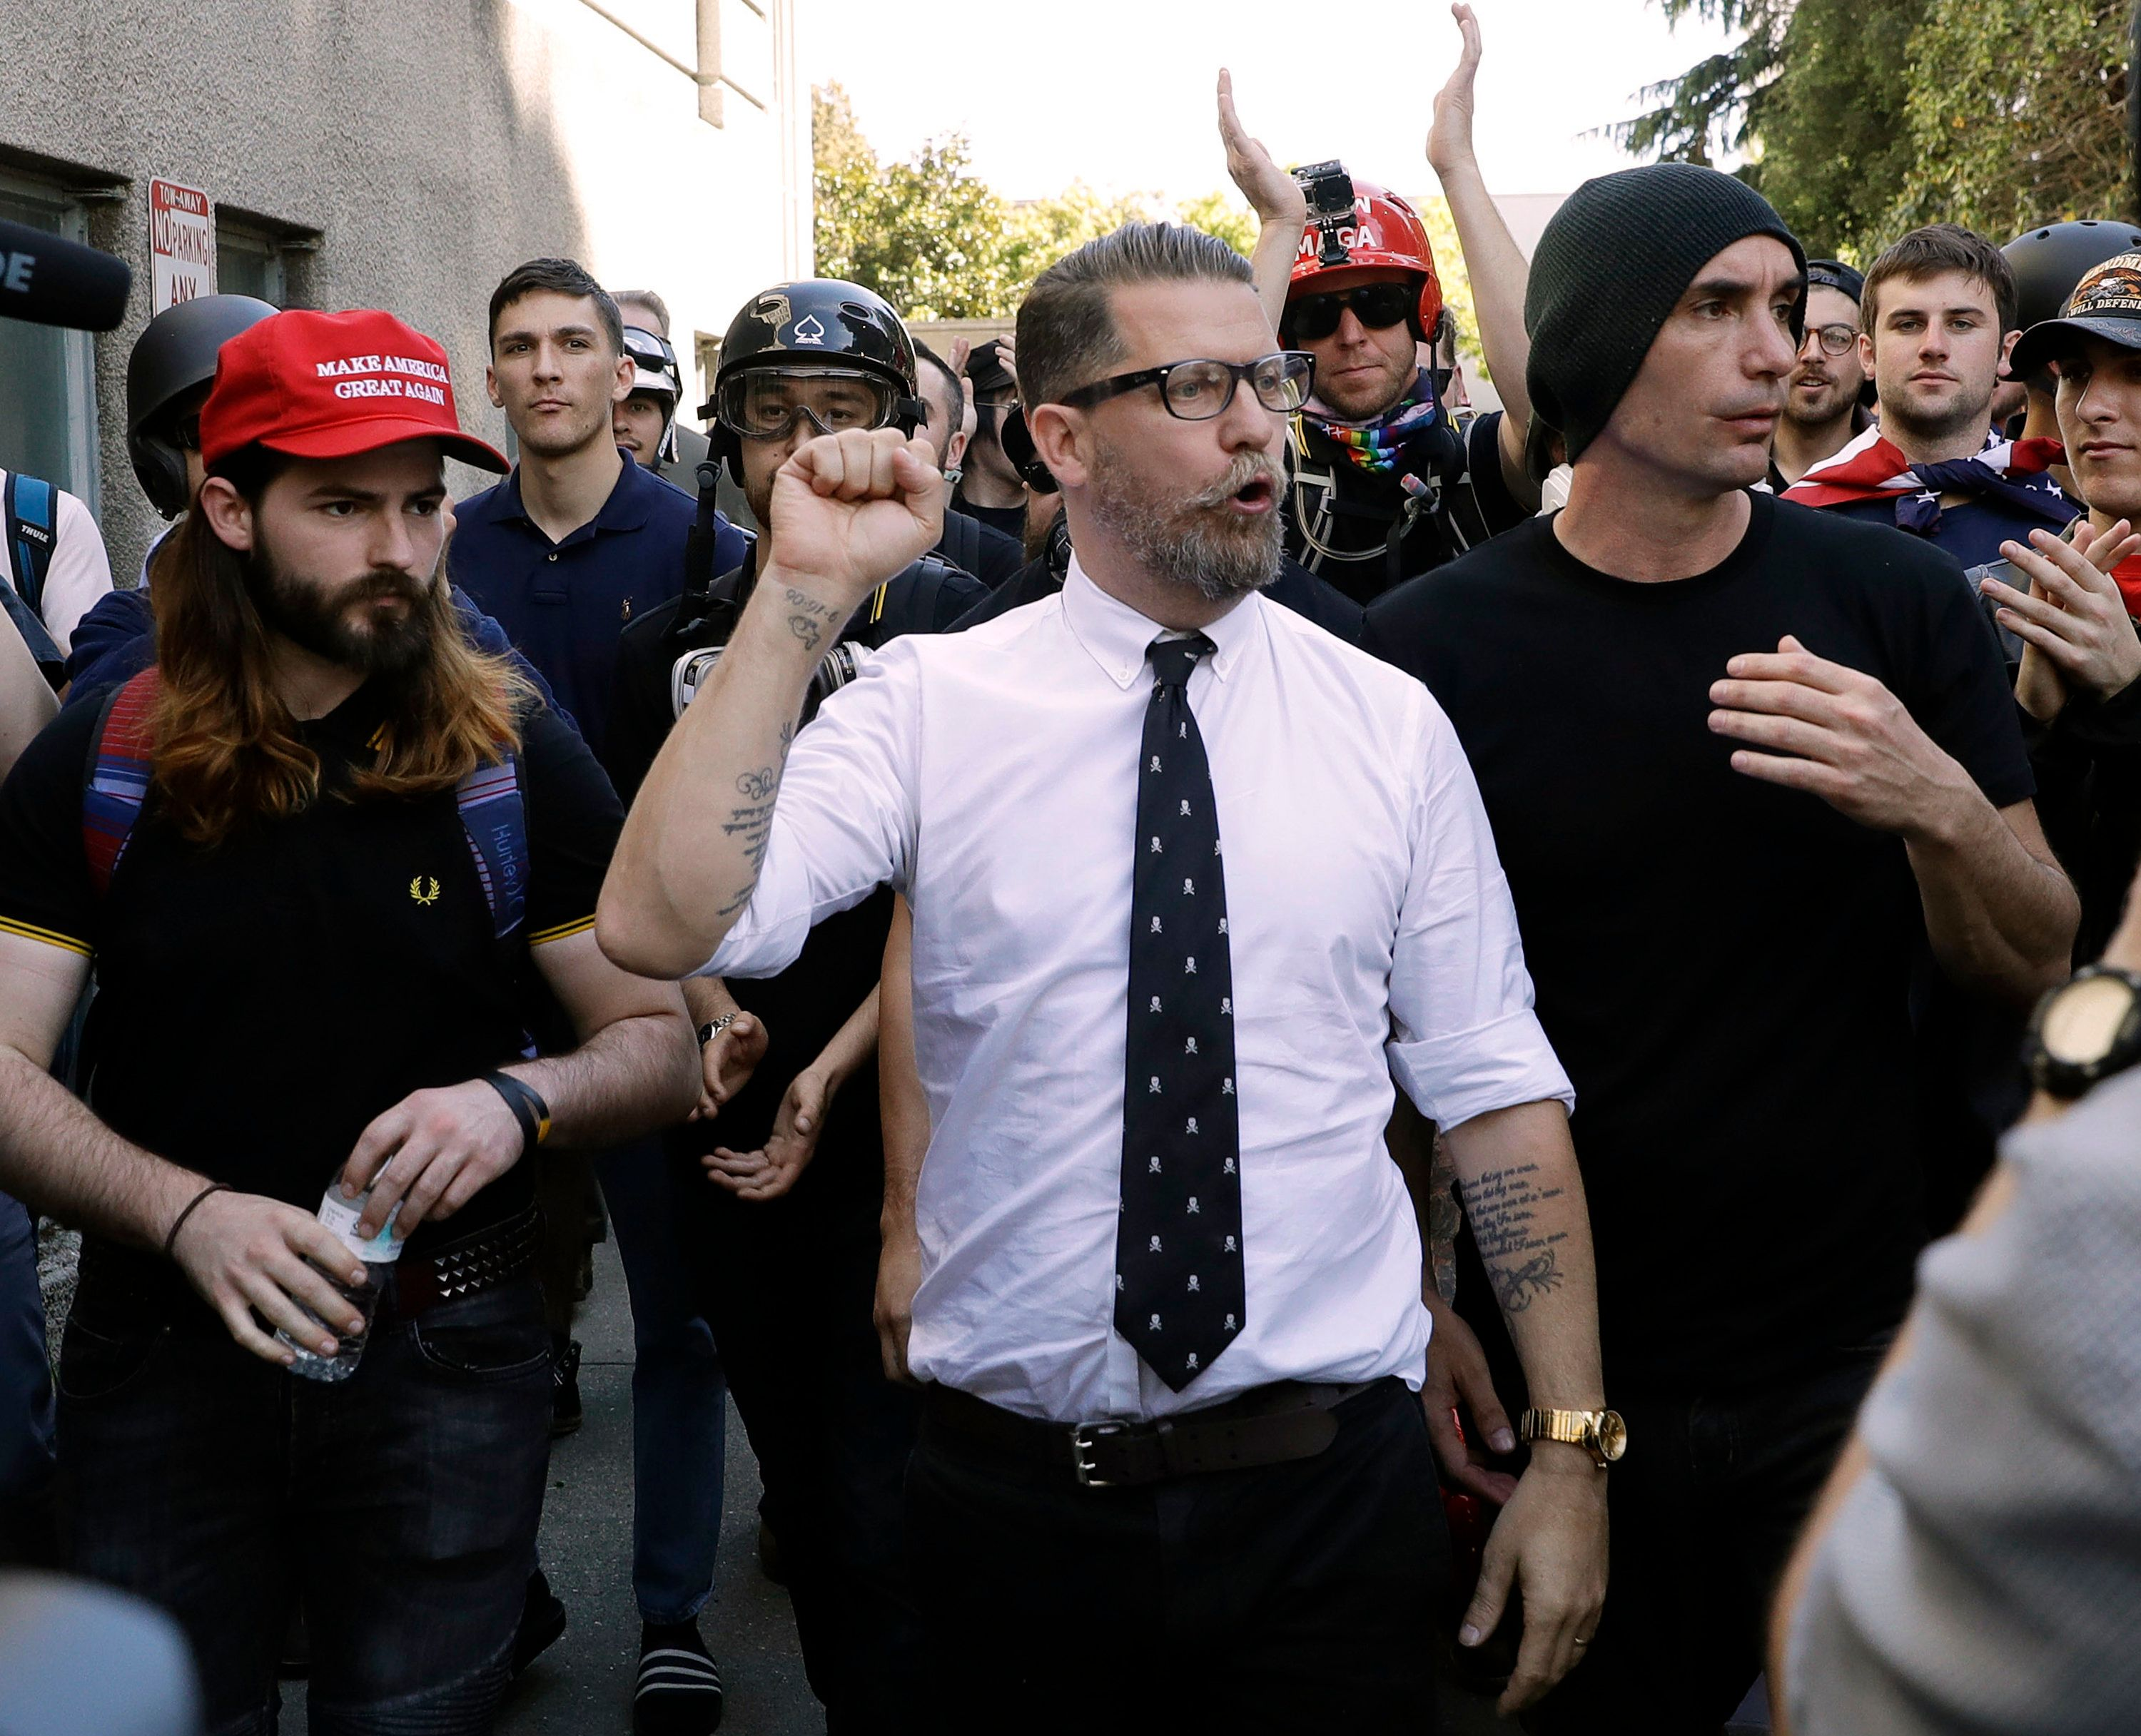 Westlake Legal Group 5c205b612200002b08debb7c Surveillance Video Shows Proud Boys Attacking NYC Protesters